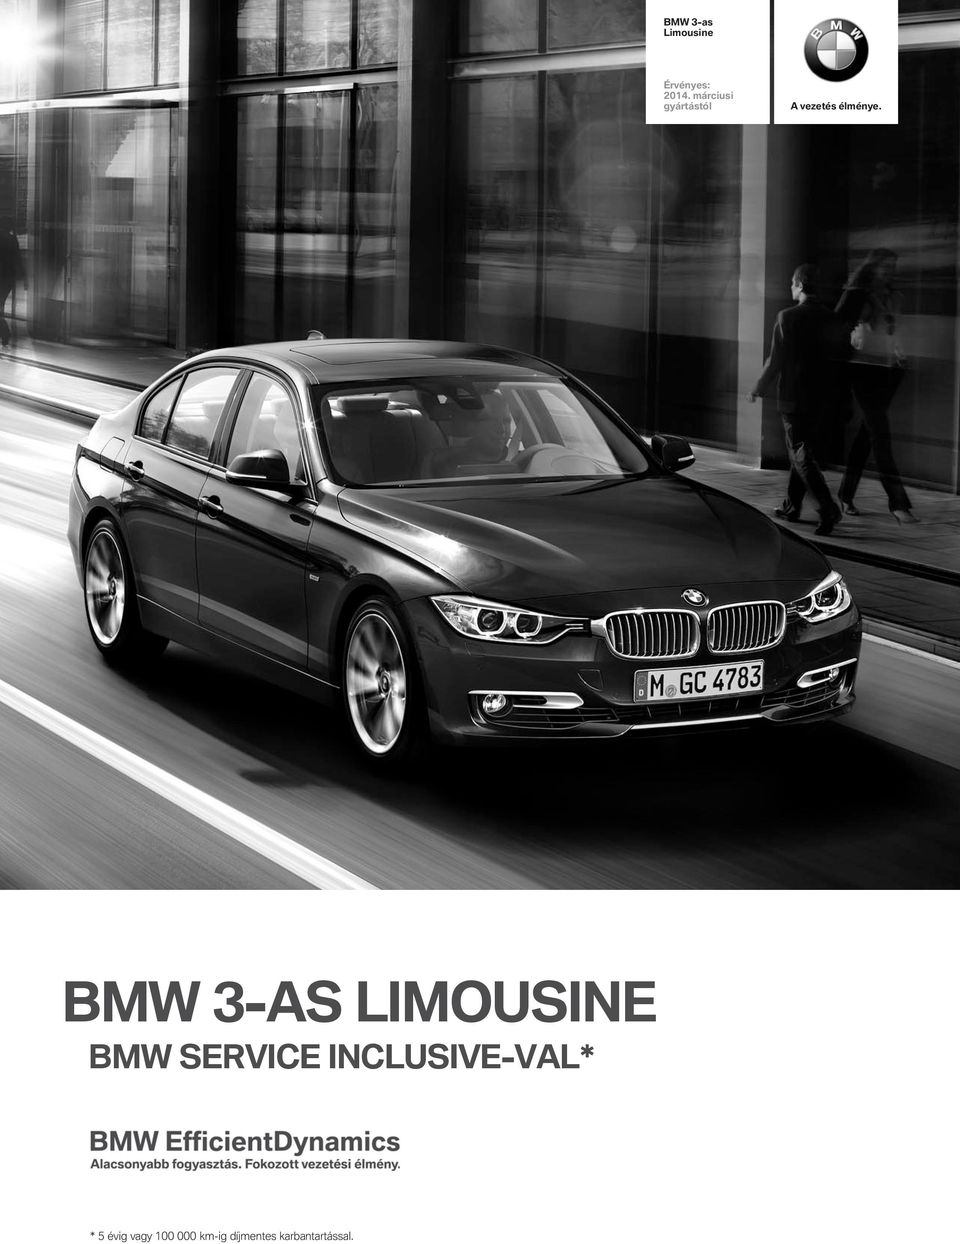 BMW 3-aS LIMUSINE BMW SERVICE